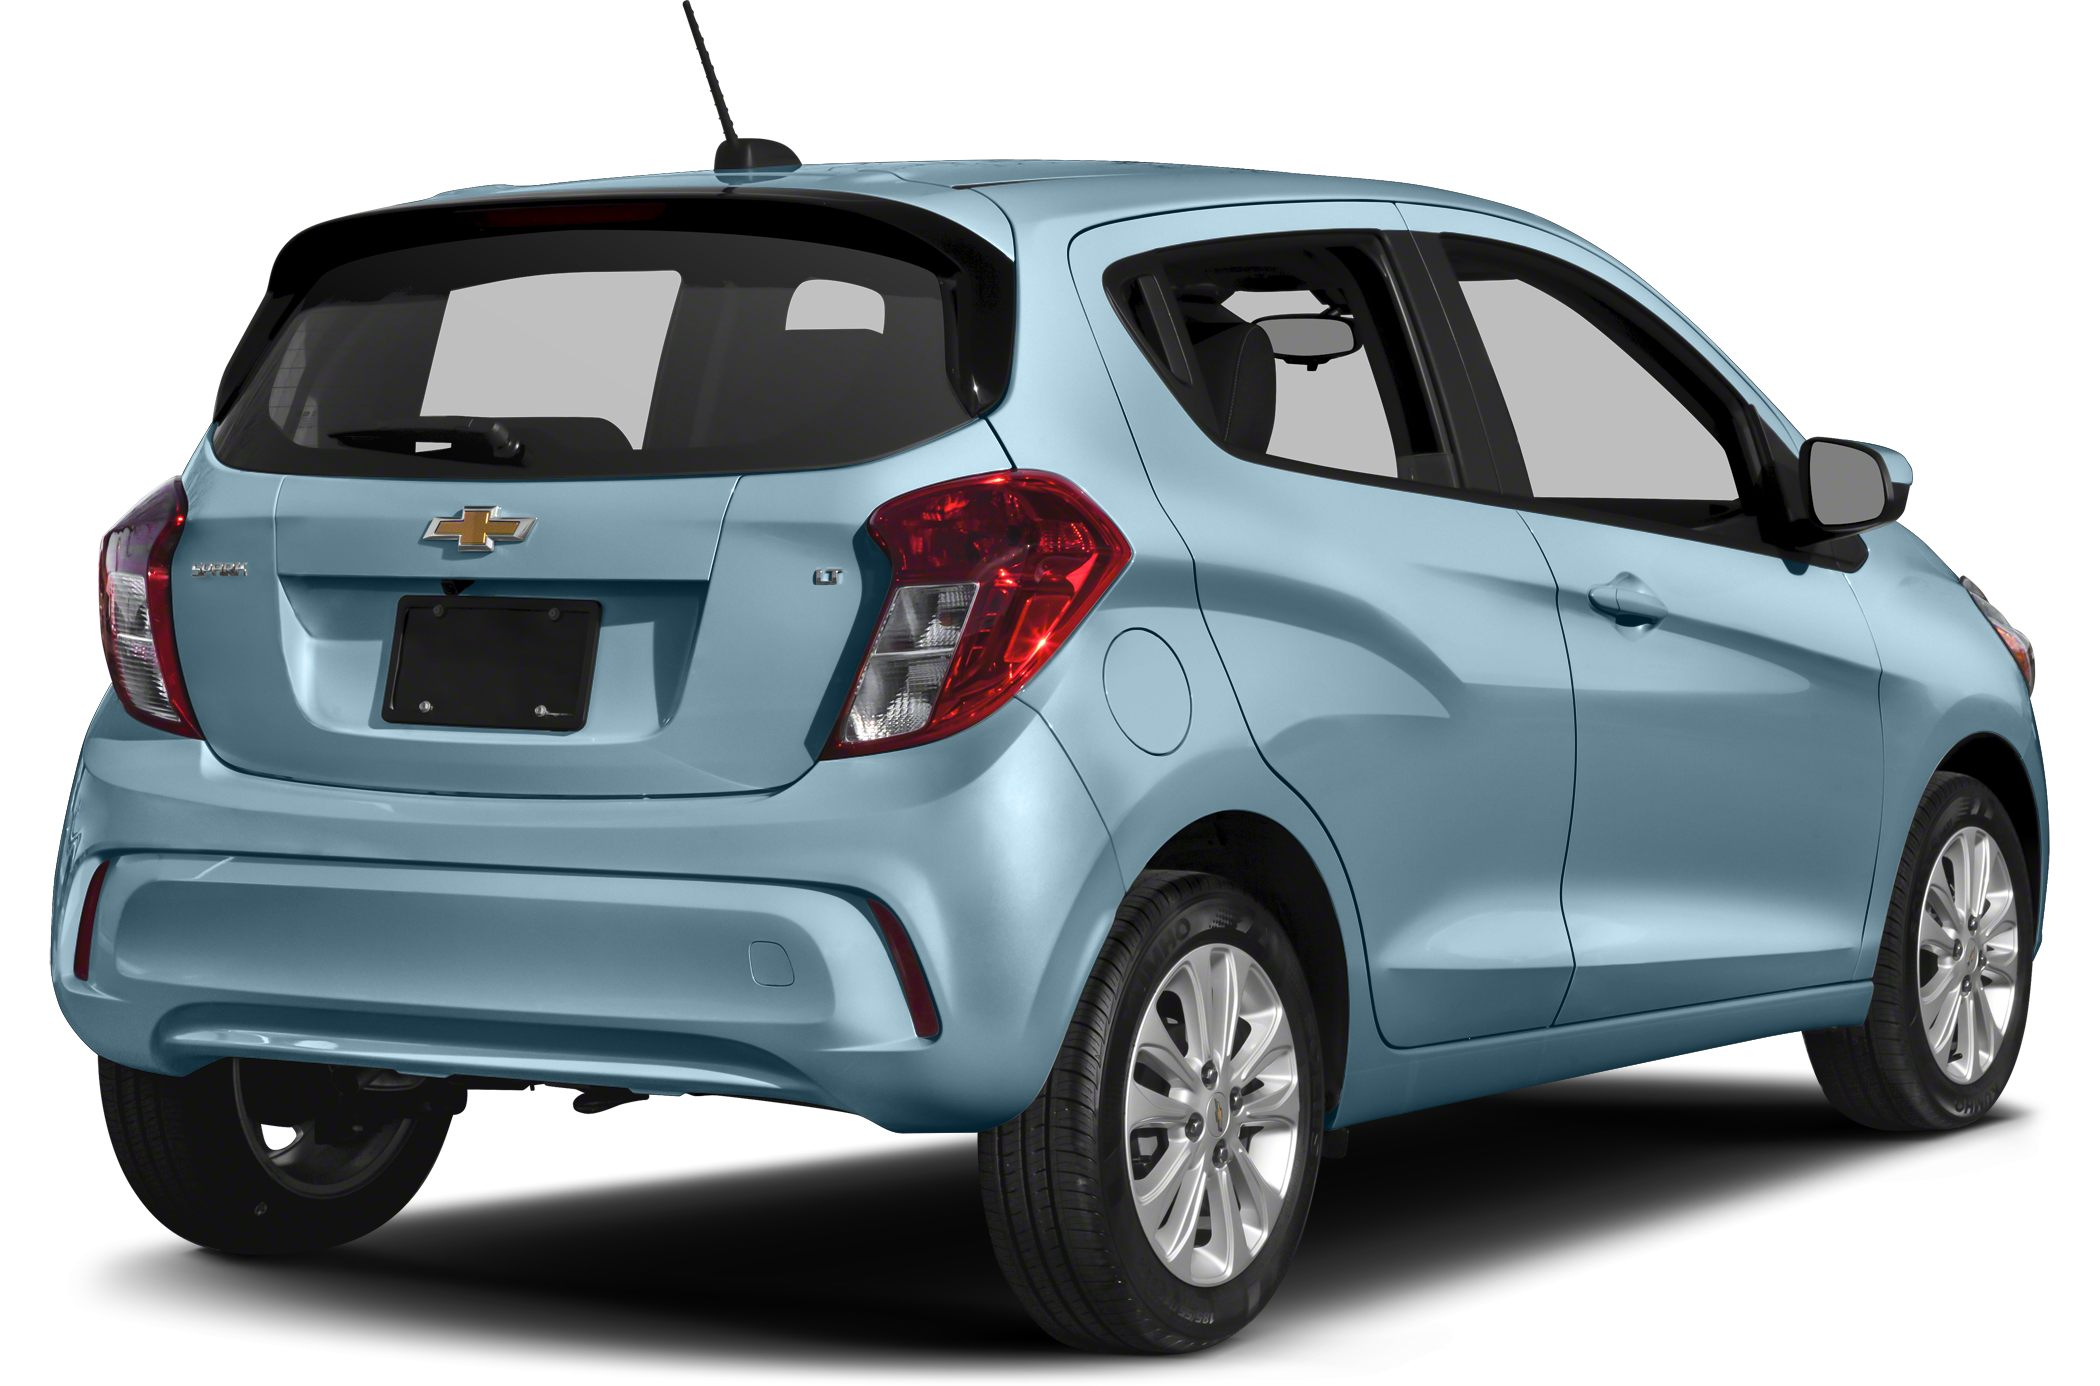 Car Repair Estimate >> 2018 Chevrolet Spark Reviews, Specs and Prices | Cars.com